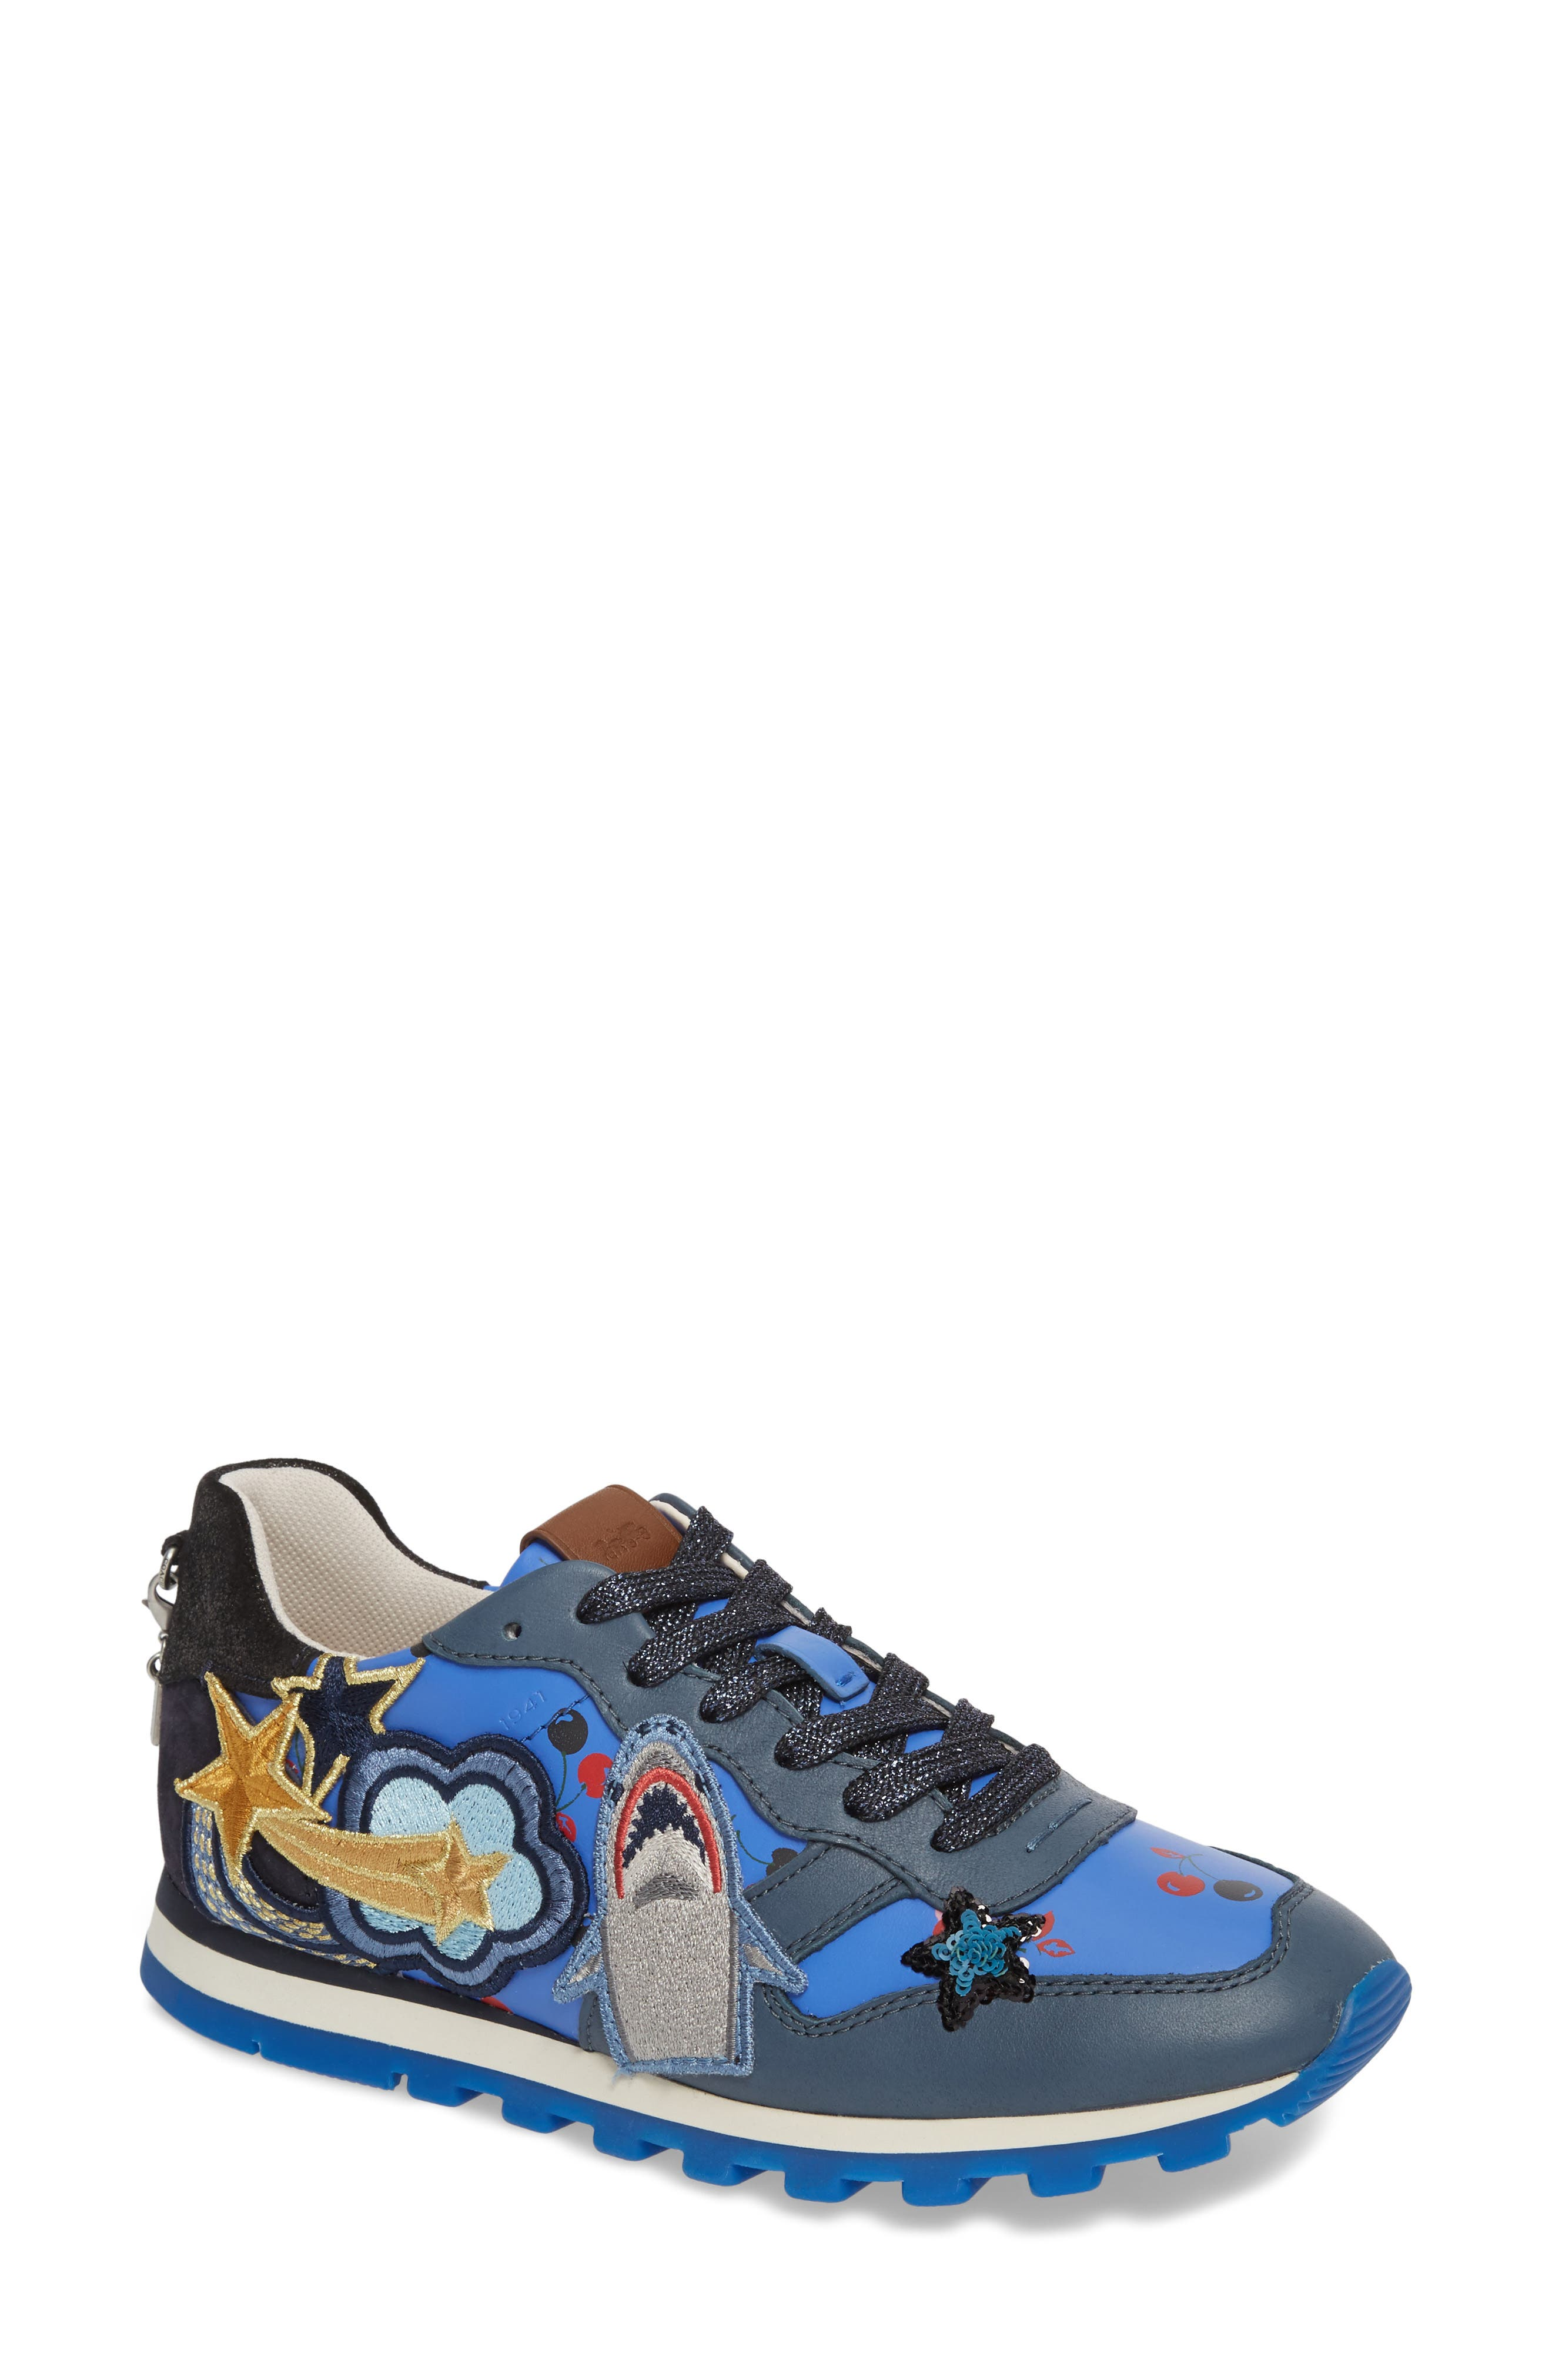 Main Image - COACH Patch Sneaker (Women)